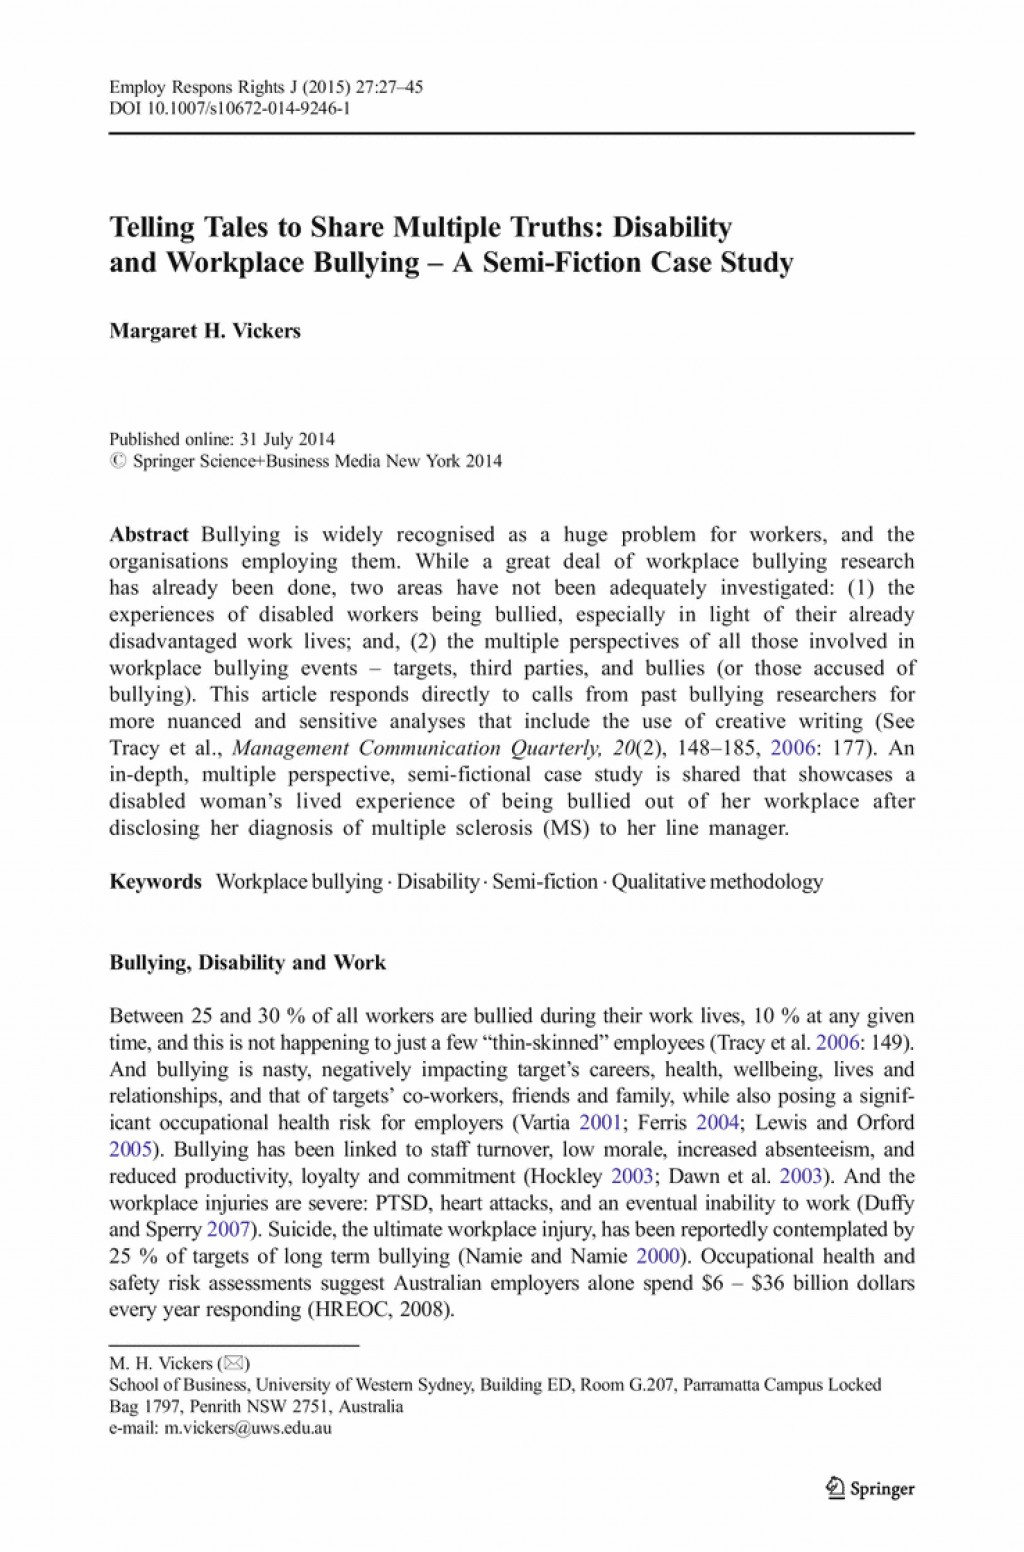 011 Conclusion Bullying Research Paper Narrative Essay Buy Original To L Dreaded Large